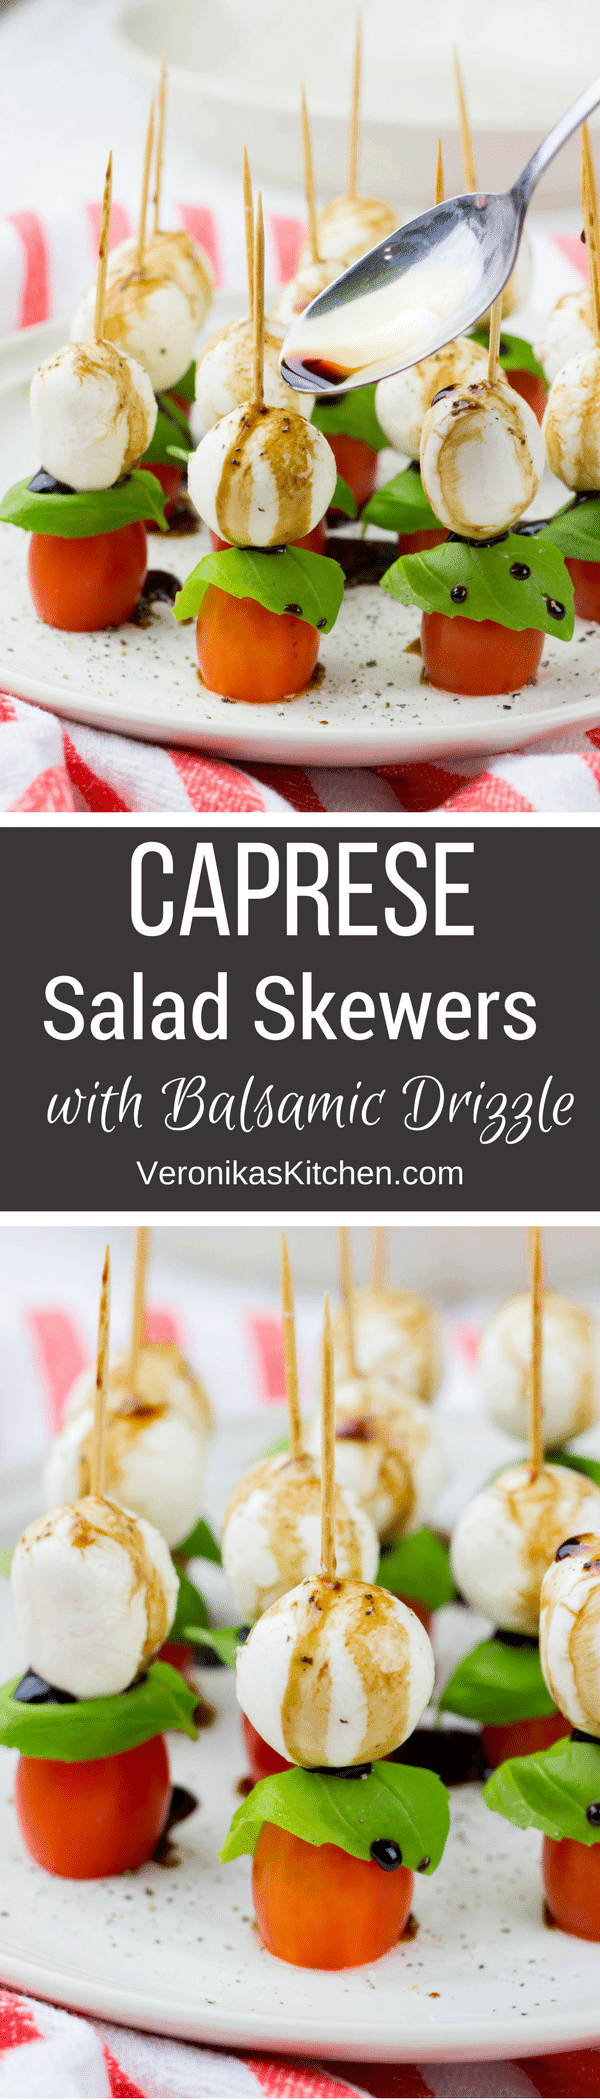 Caprese Salad Skewers with Balsamic Drizzle is a perfect healthy appetizer recipe for any holiday. This easy to make vegan, gluten free dish will be a perfect addition to your holiday repertoire.